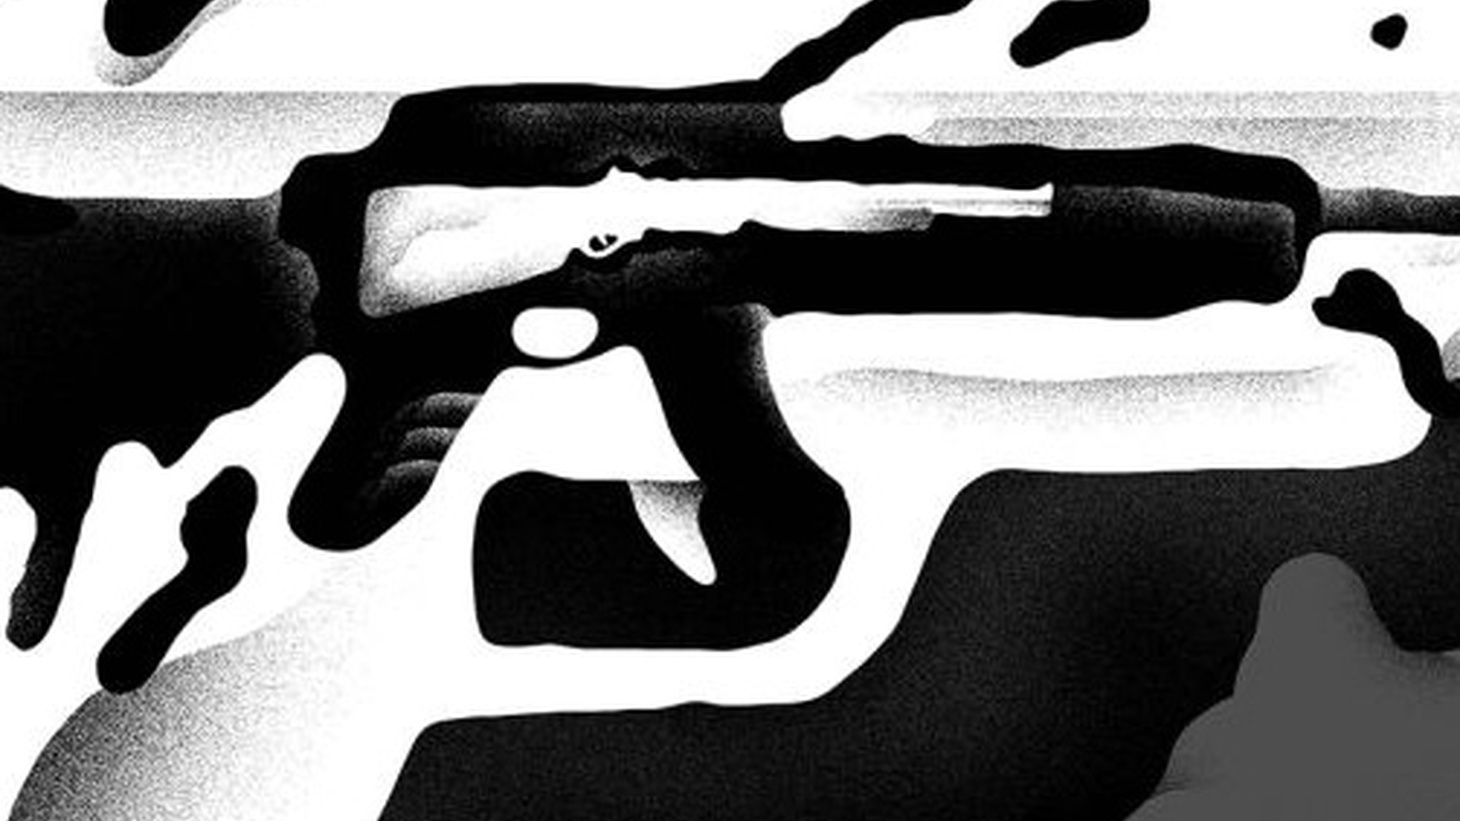 The New Yorker writer Evan Osnos talks to Mike Weisser about guns, the N.R.A., and his unusual stance on firearms. And The writer Mary Karr has a fetish for high-heeled shoes. She just can't wear them anymore.